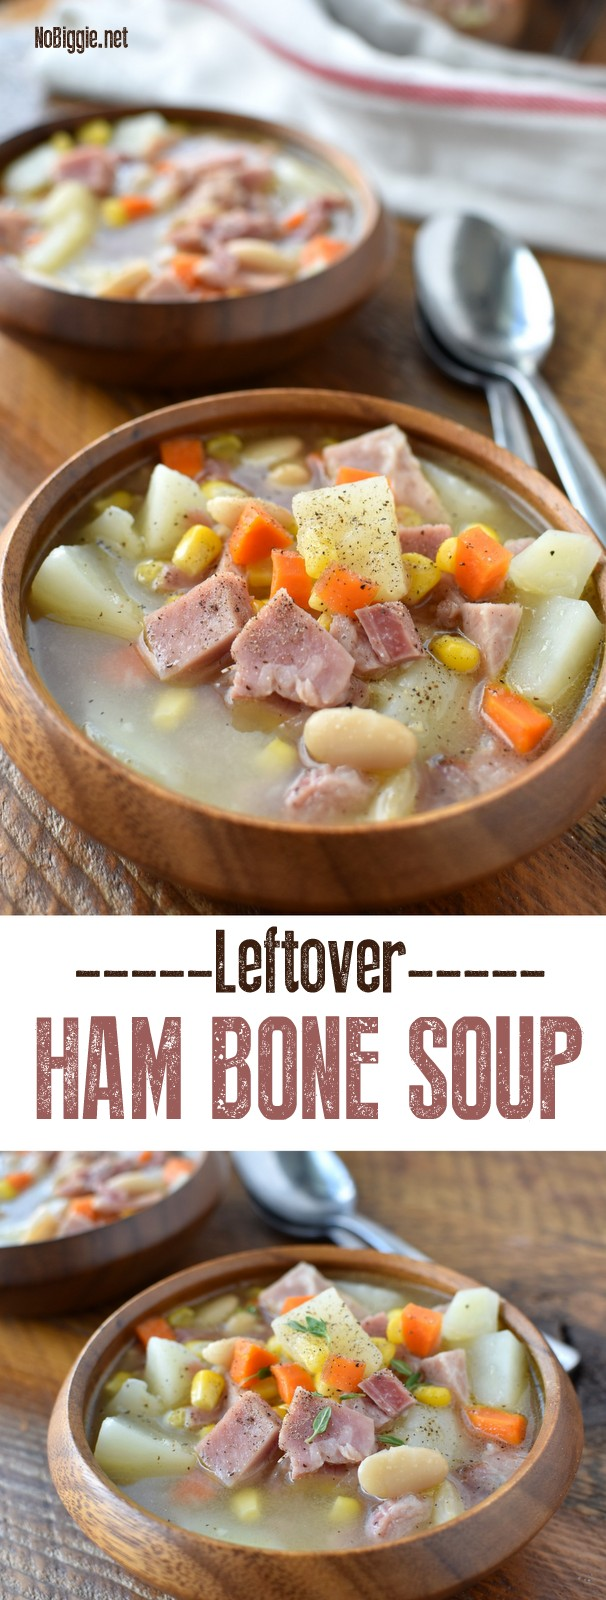 https://www.nobiggie.net/wp-content/uploads/2017/08/Ham-Bone-Soup.jpg